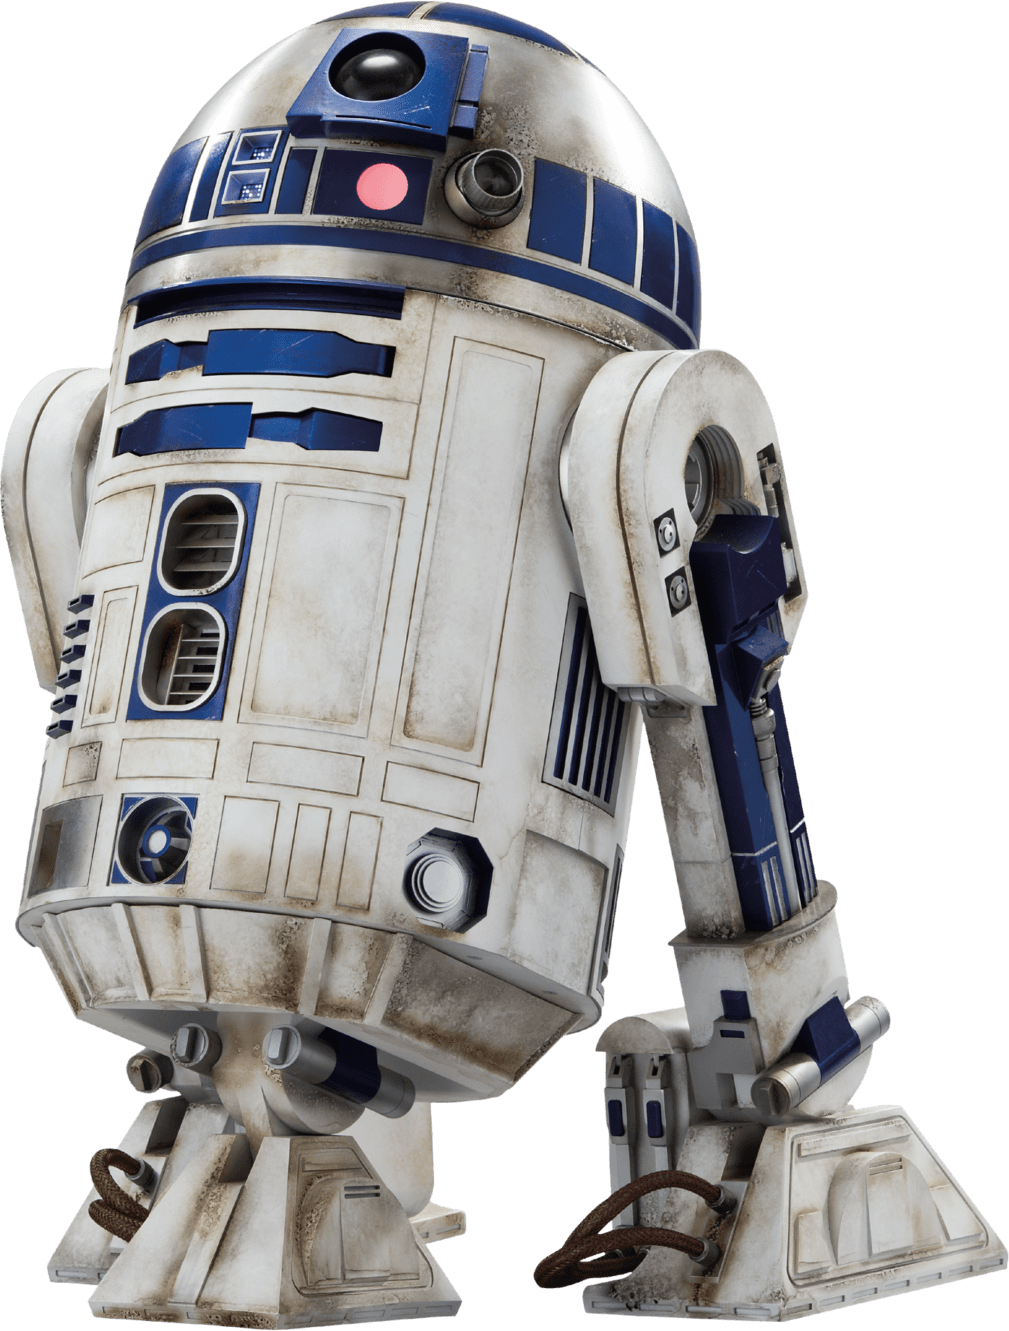 R d at getdrawings. Starwars clipart r2d2 c3po